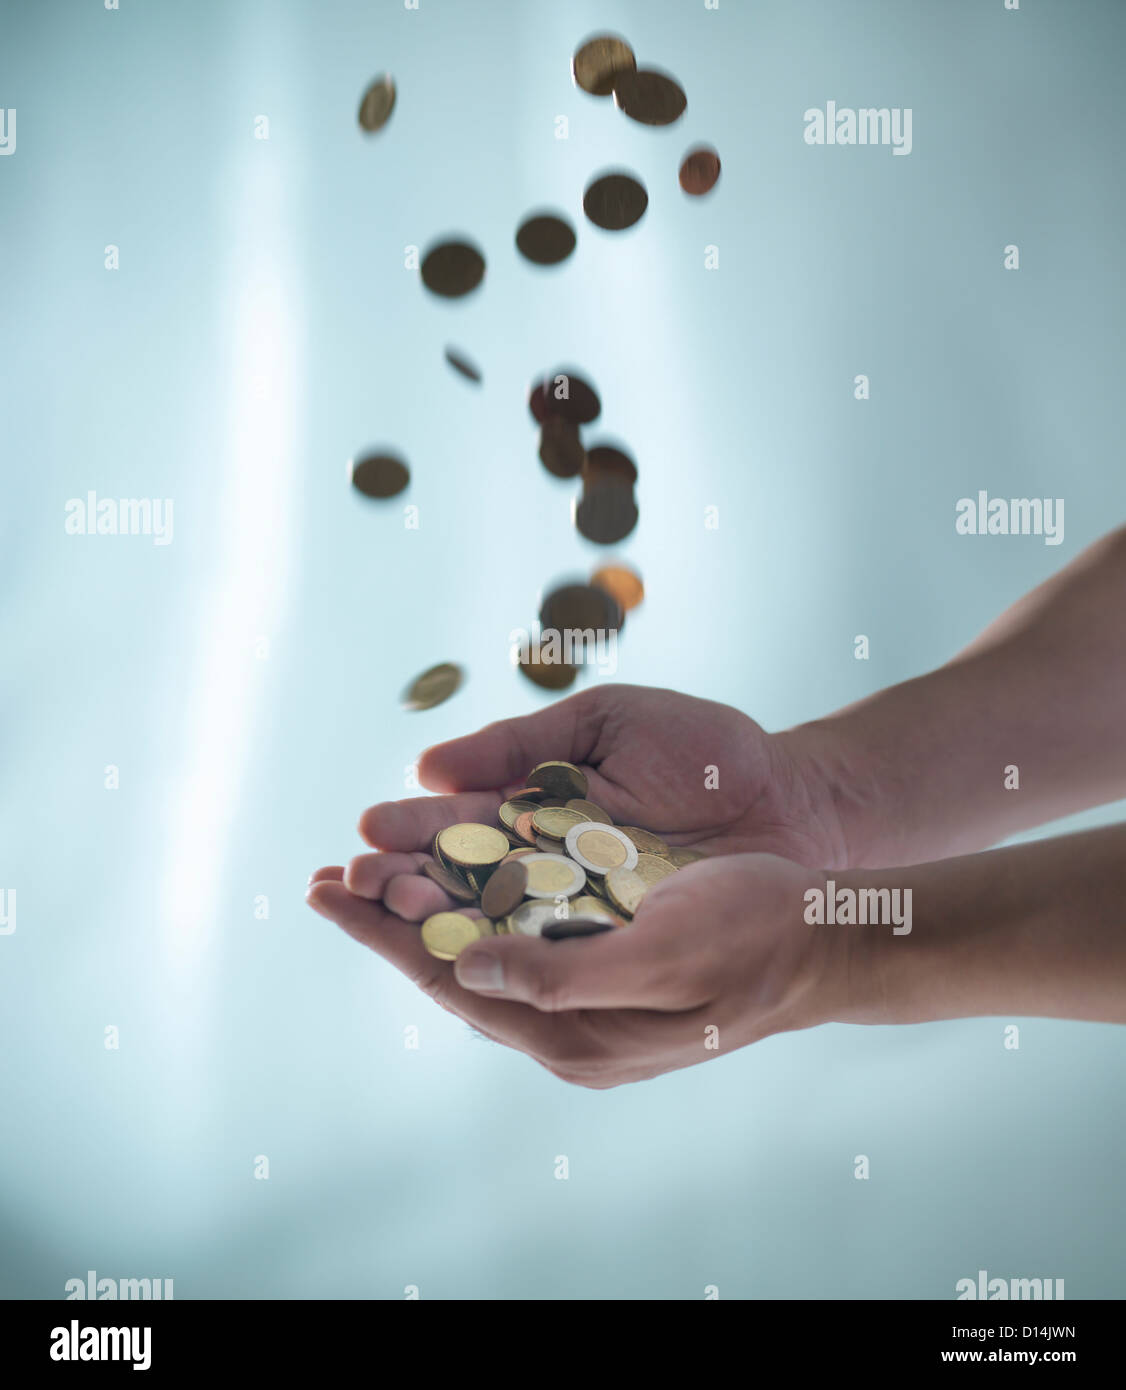 Close up of hands catching pile of coins Stock Photo